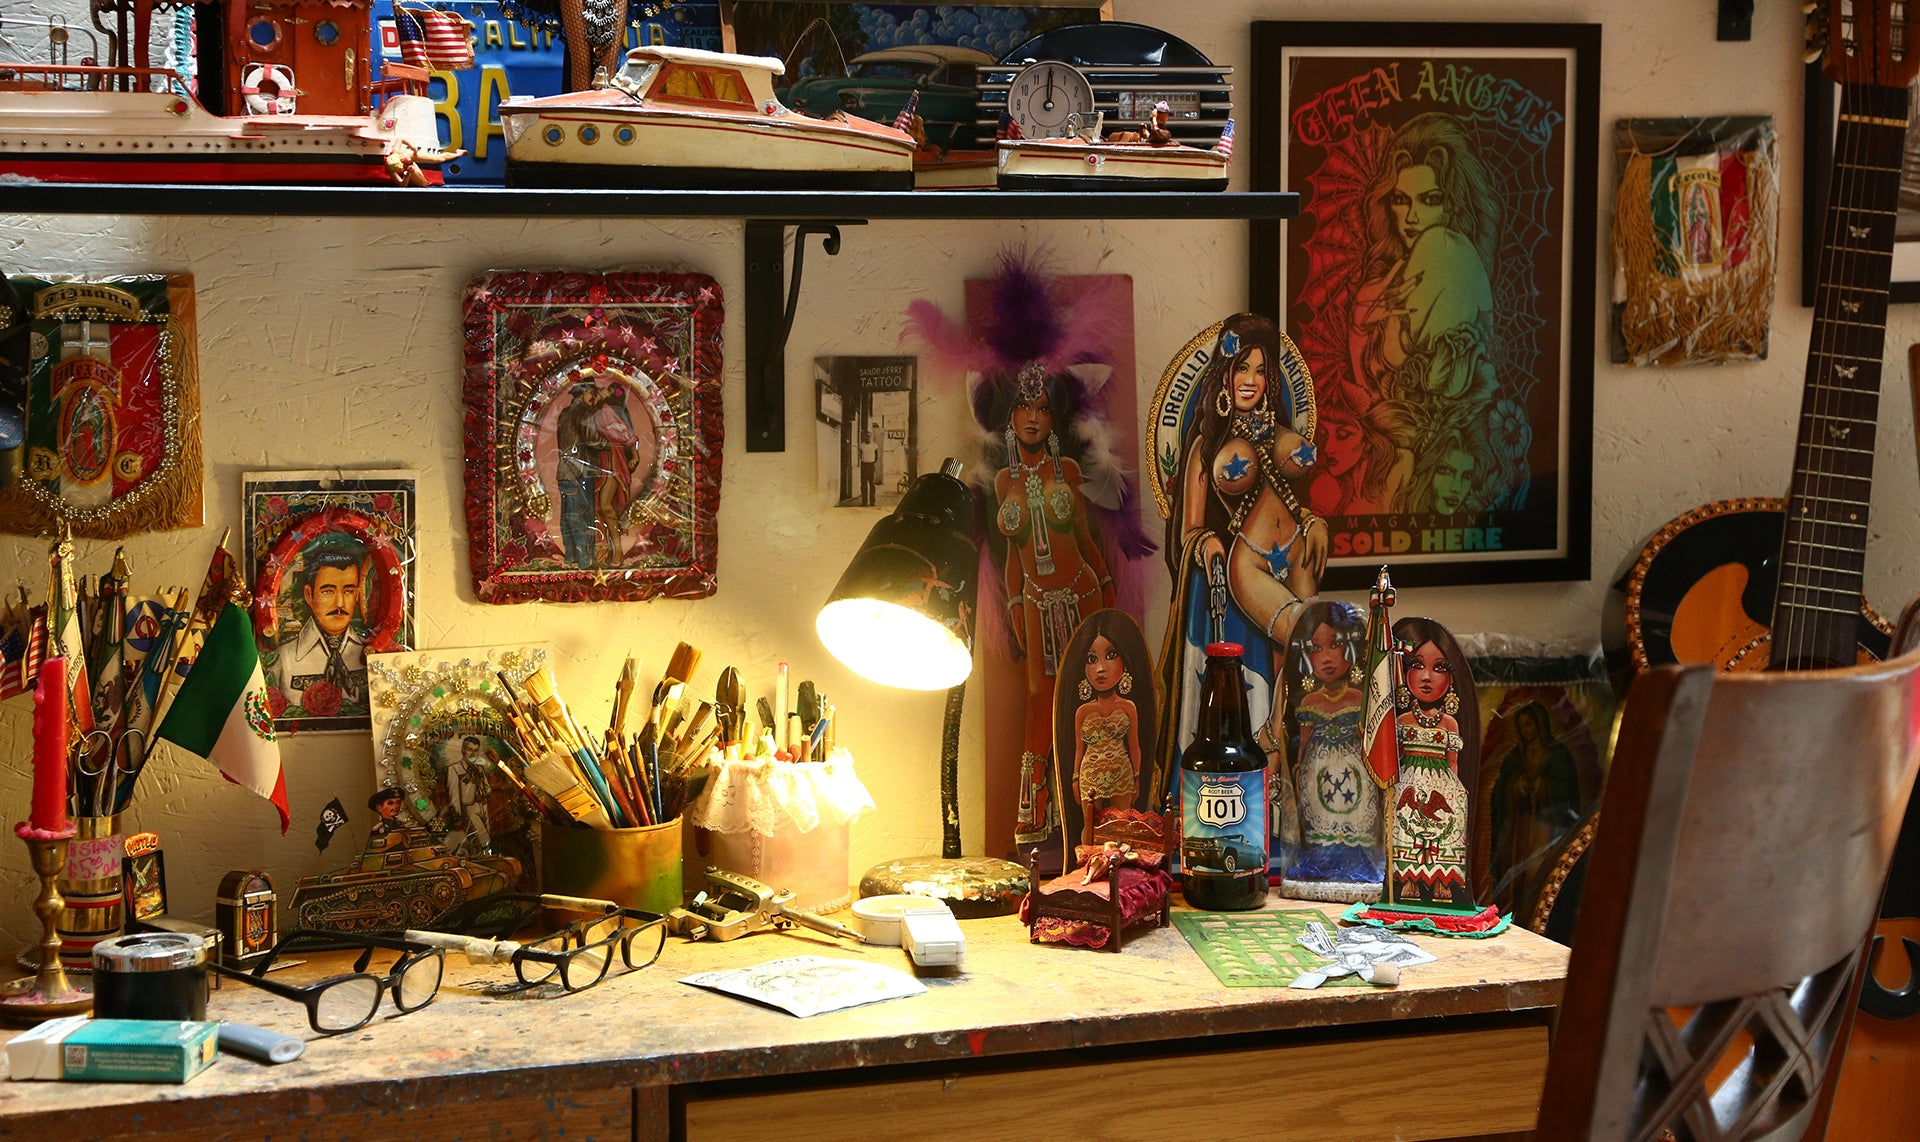 Teen Angel workspace